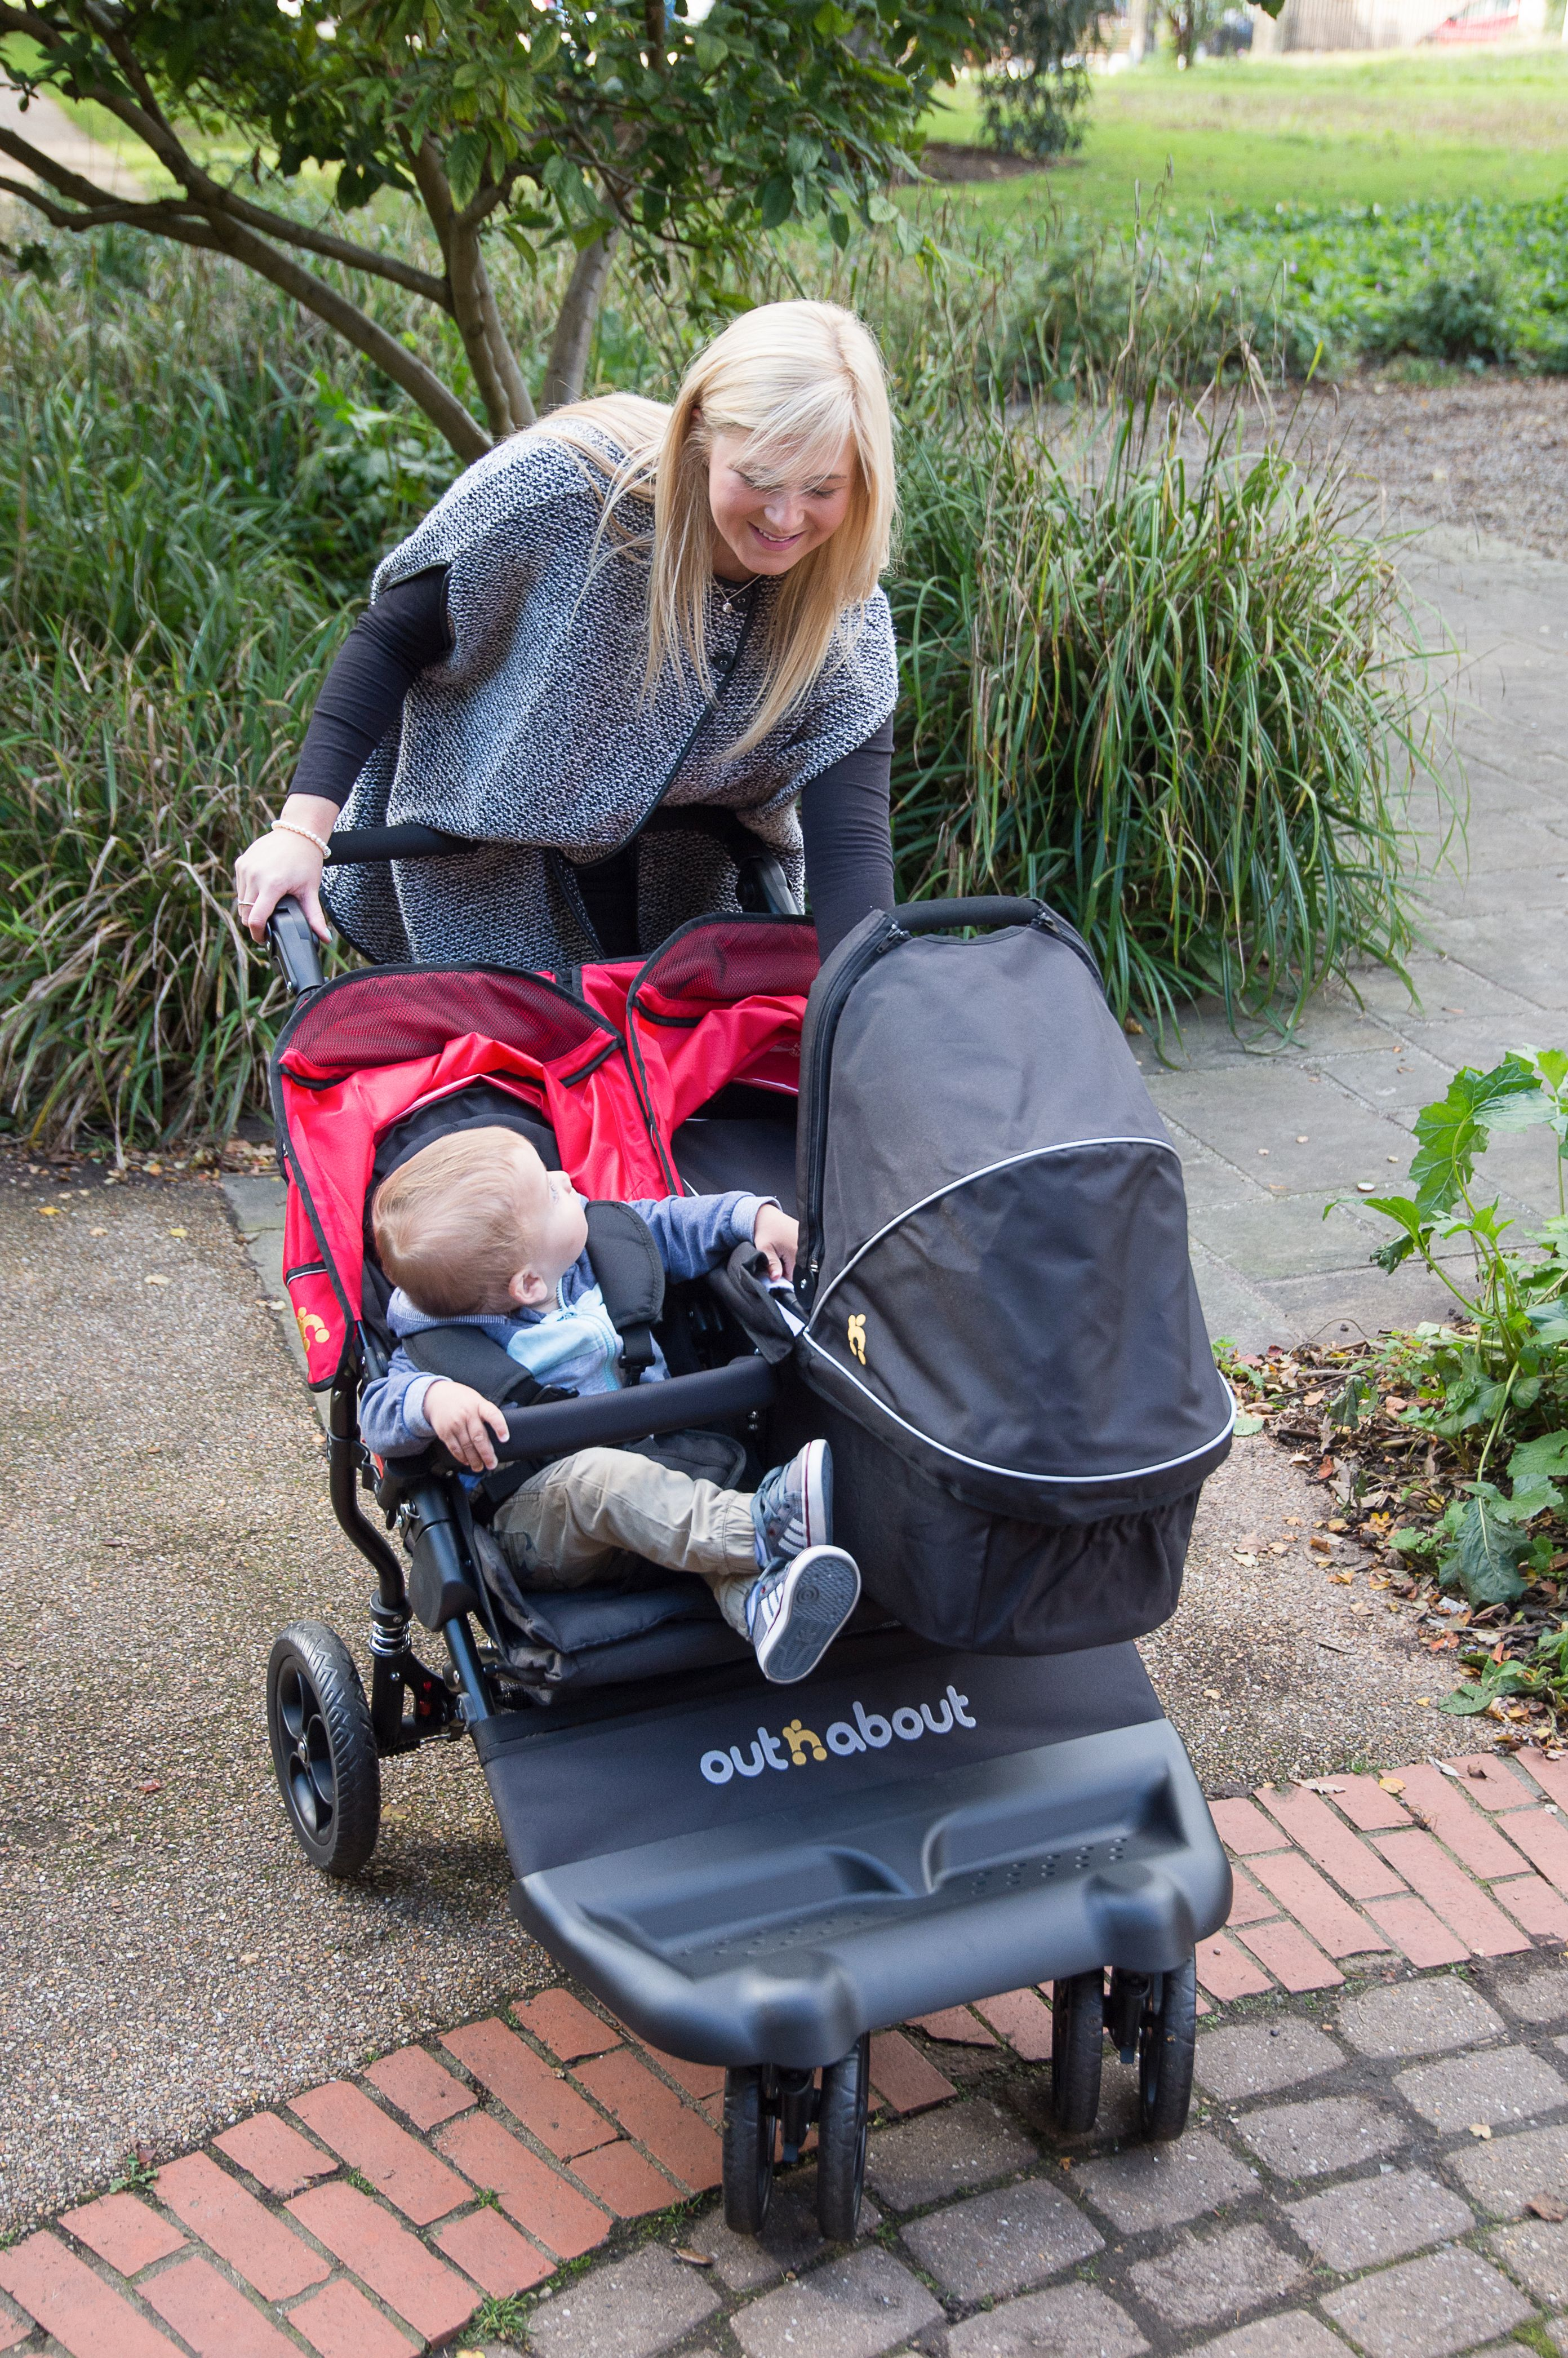 Suitable from newborn with the option of attaching either 1 or 2 carrycots  the Little Nipper Double from  outnaboutuk utnabout can comfortably seat 2  ... 2cf37b2430